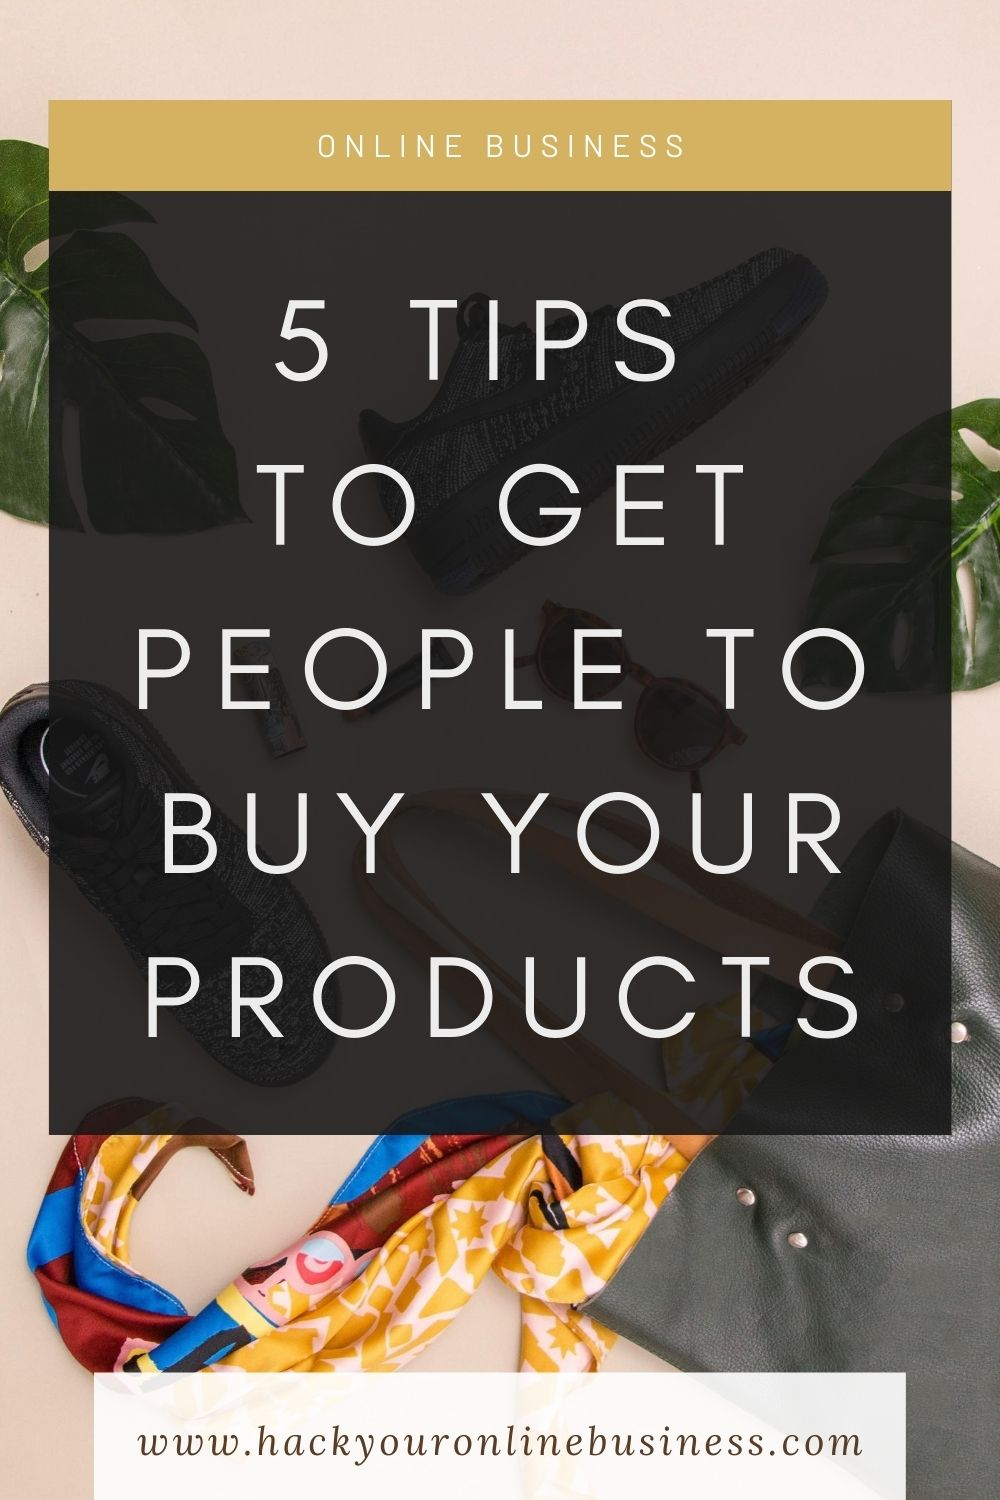 5 Tips To Get Customers To Buy Your Products